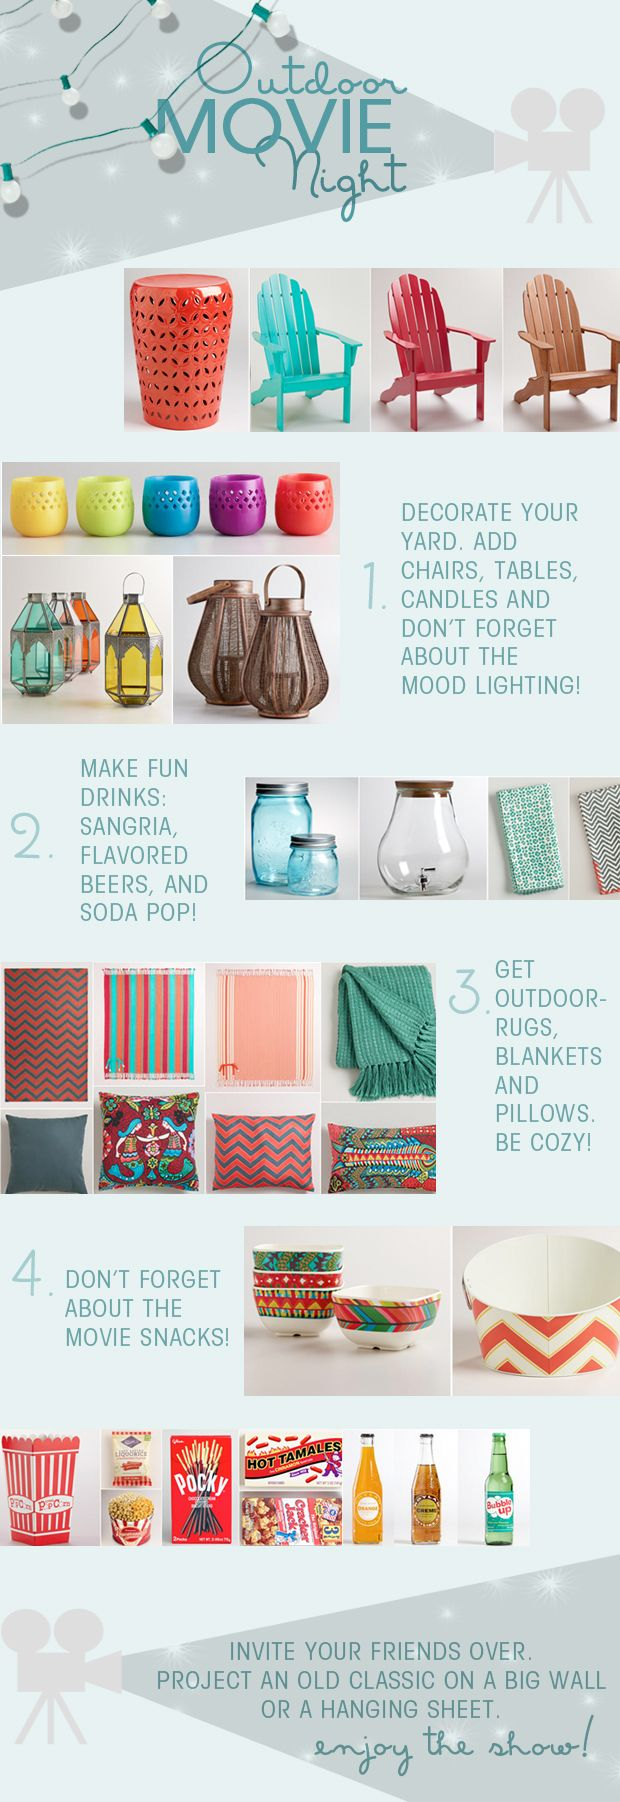 how to make an outdoor movie night! (World Market Pinterest followers can enter for a chance to win a Backyard Theater System and a 1000$ World Market gift card--check the blog for details!)